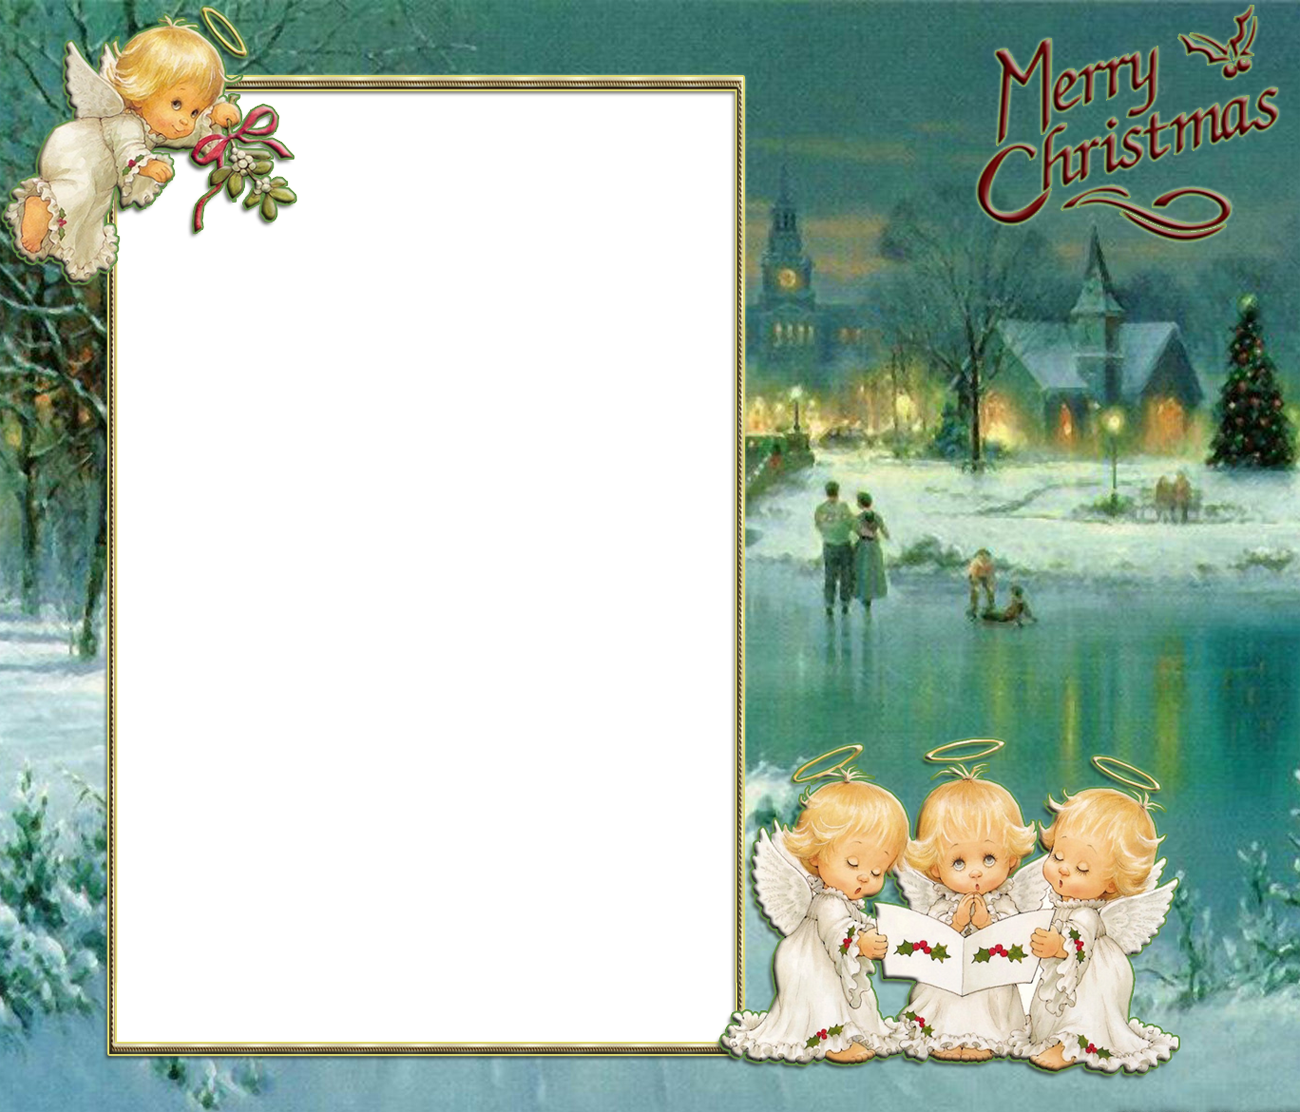 Holiday angels png. Transparent christmas retro photo